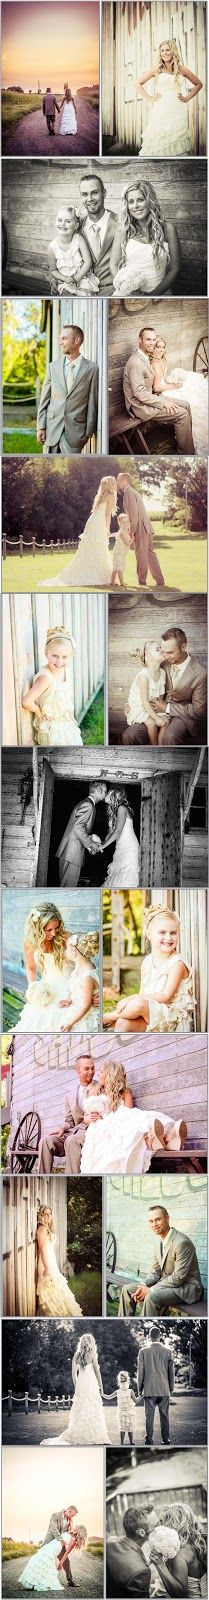 Small, Intimate, Family Wedding - Picture Ideas